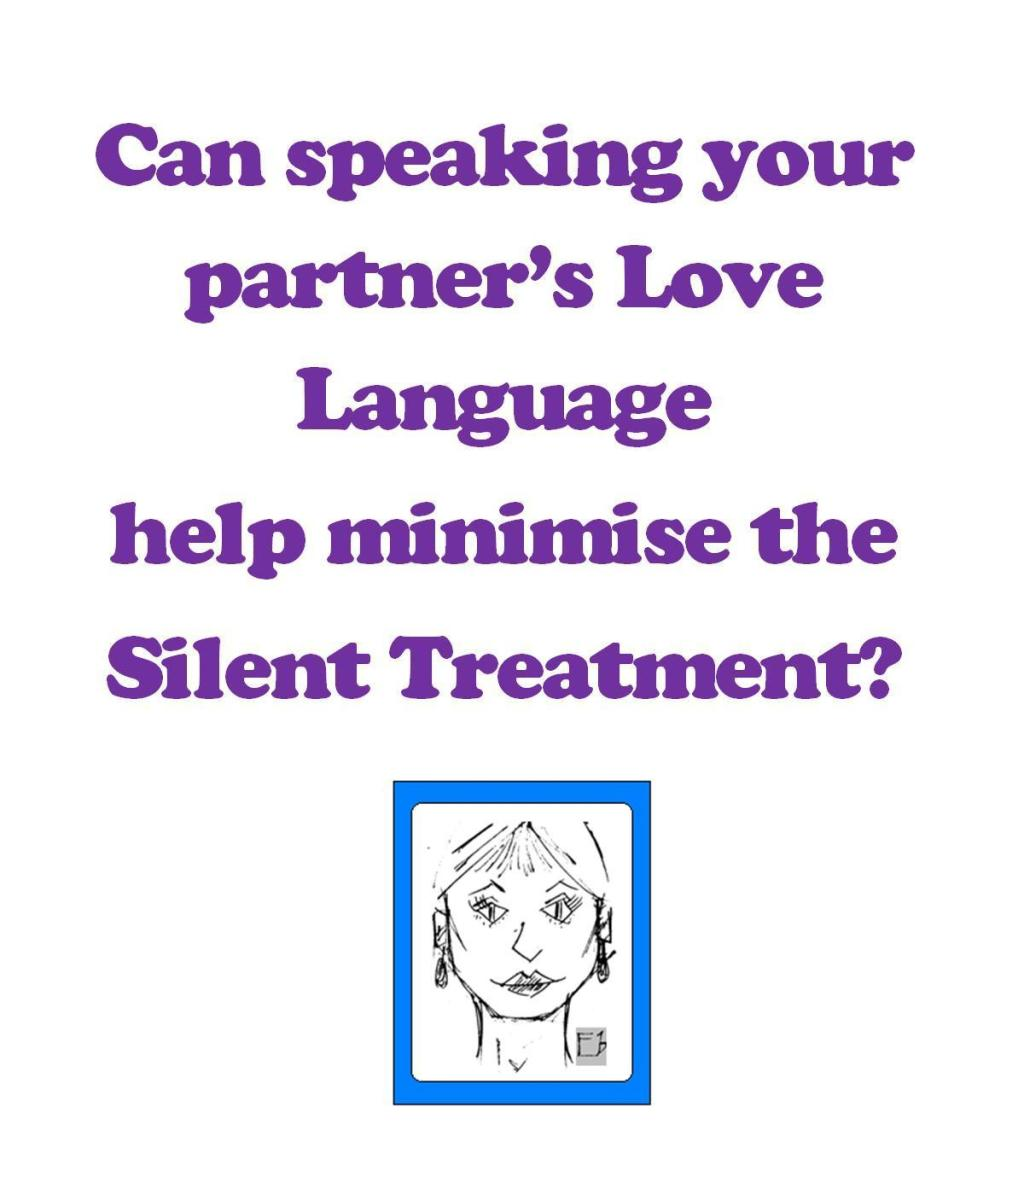 Nurturing your relationship between bouts of recurrent Passive Aggressive Silent Treatment